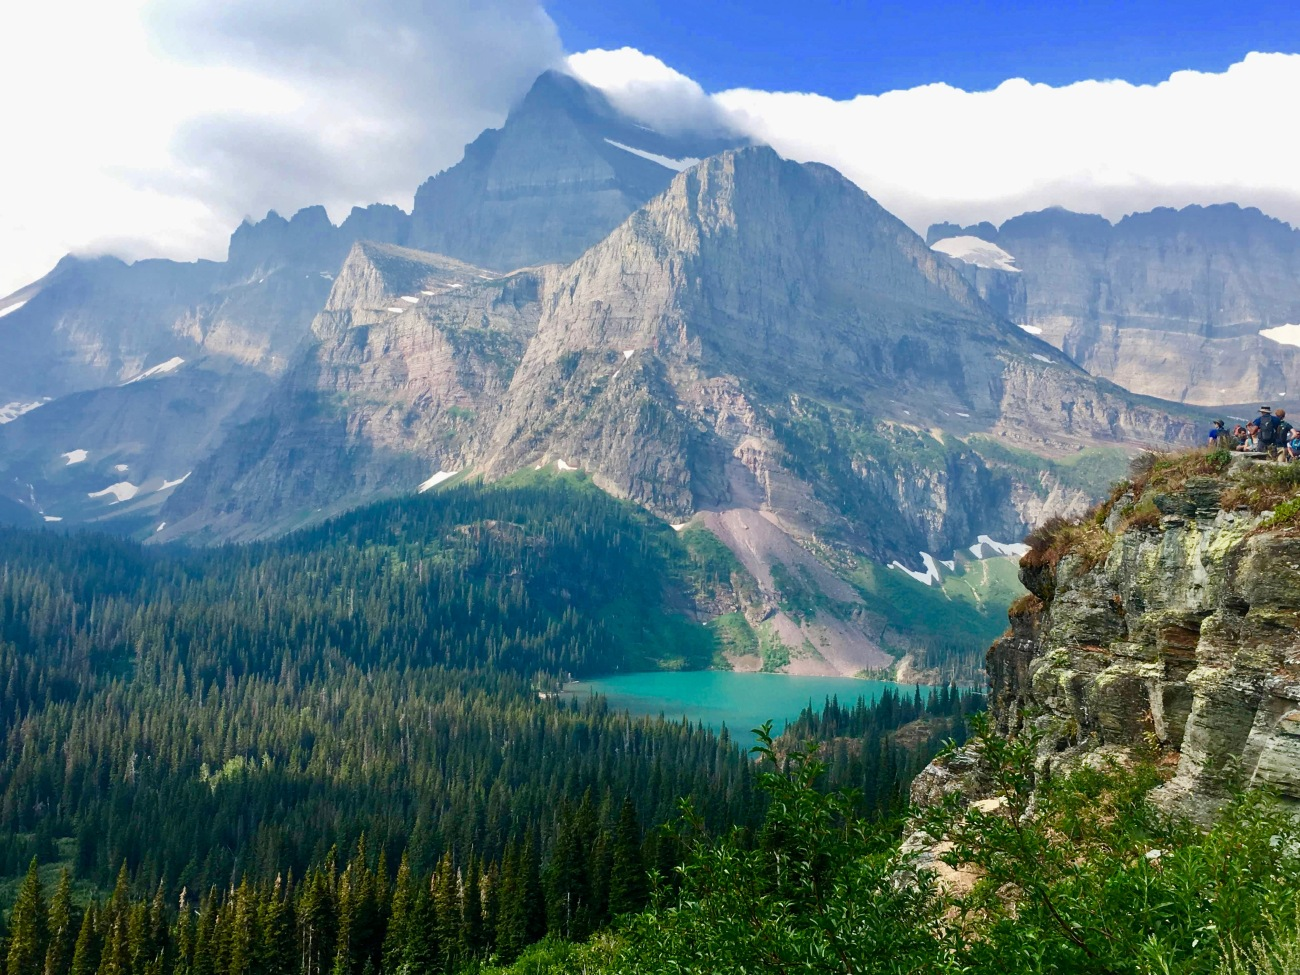 national parks, glacier national park, grinnell, highline, trail, hikes, adventure, forest, wildlife, wildflowers, nature